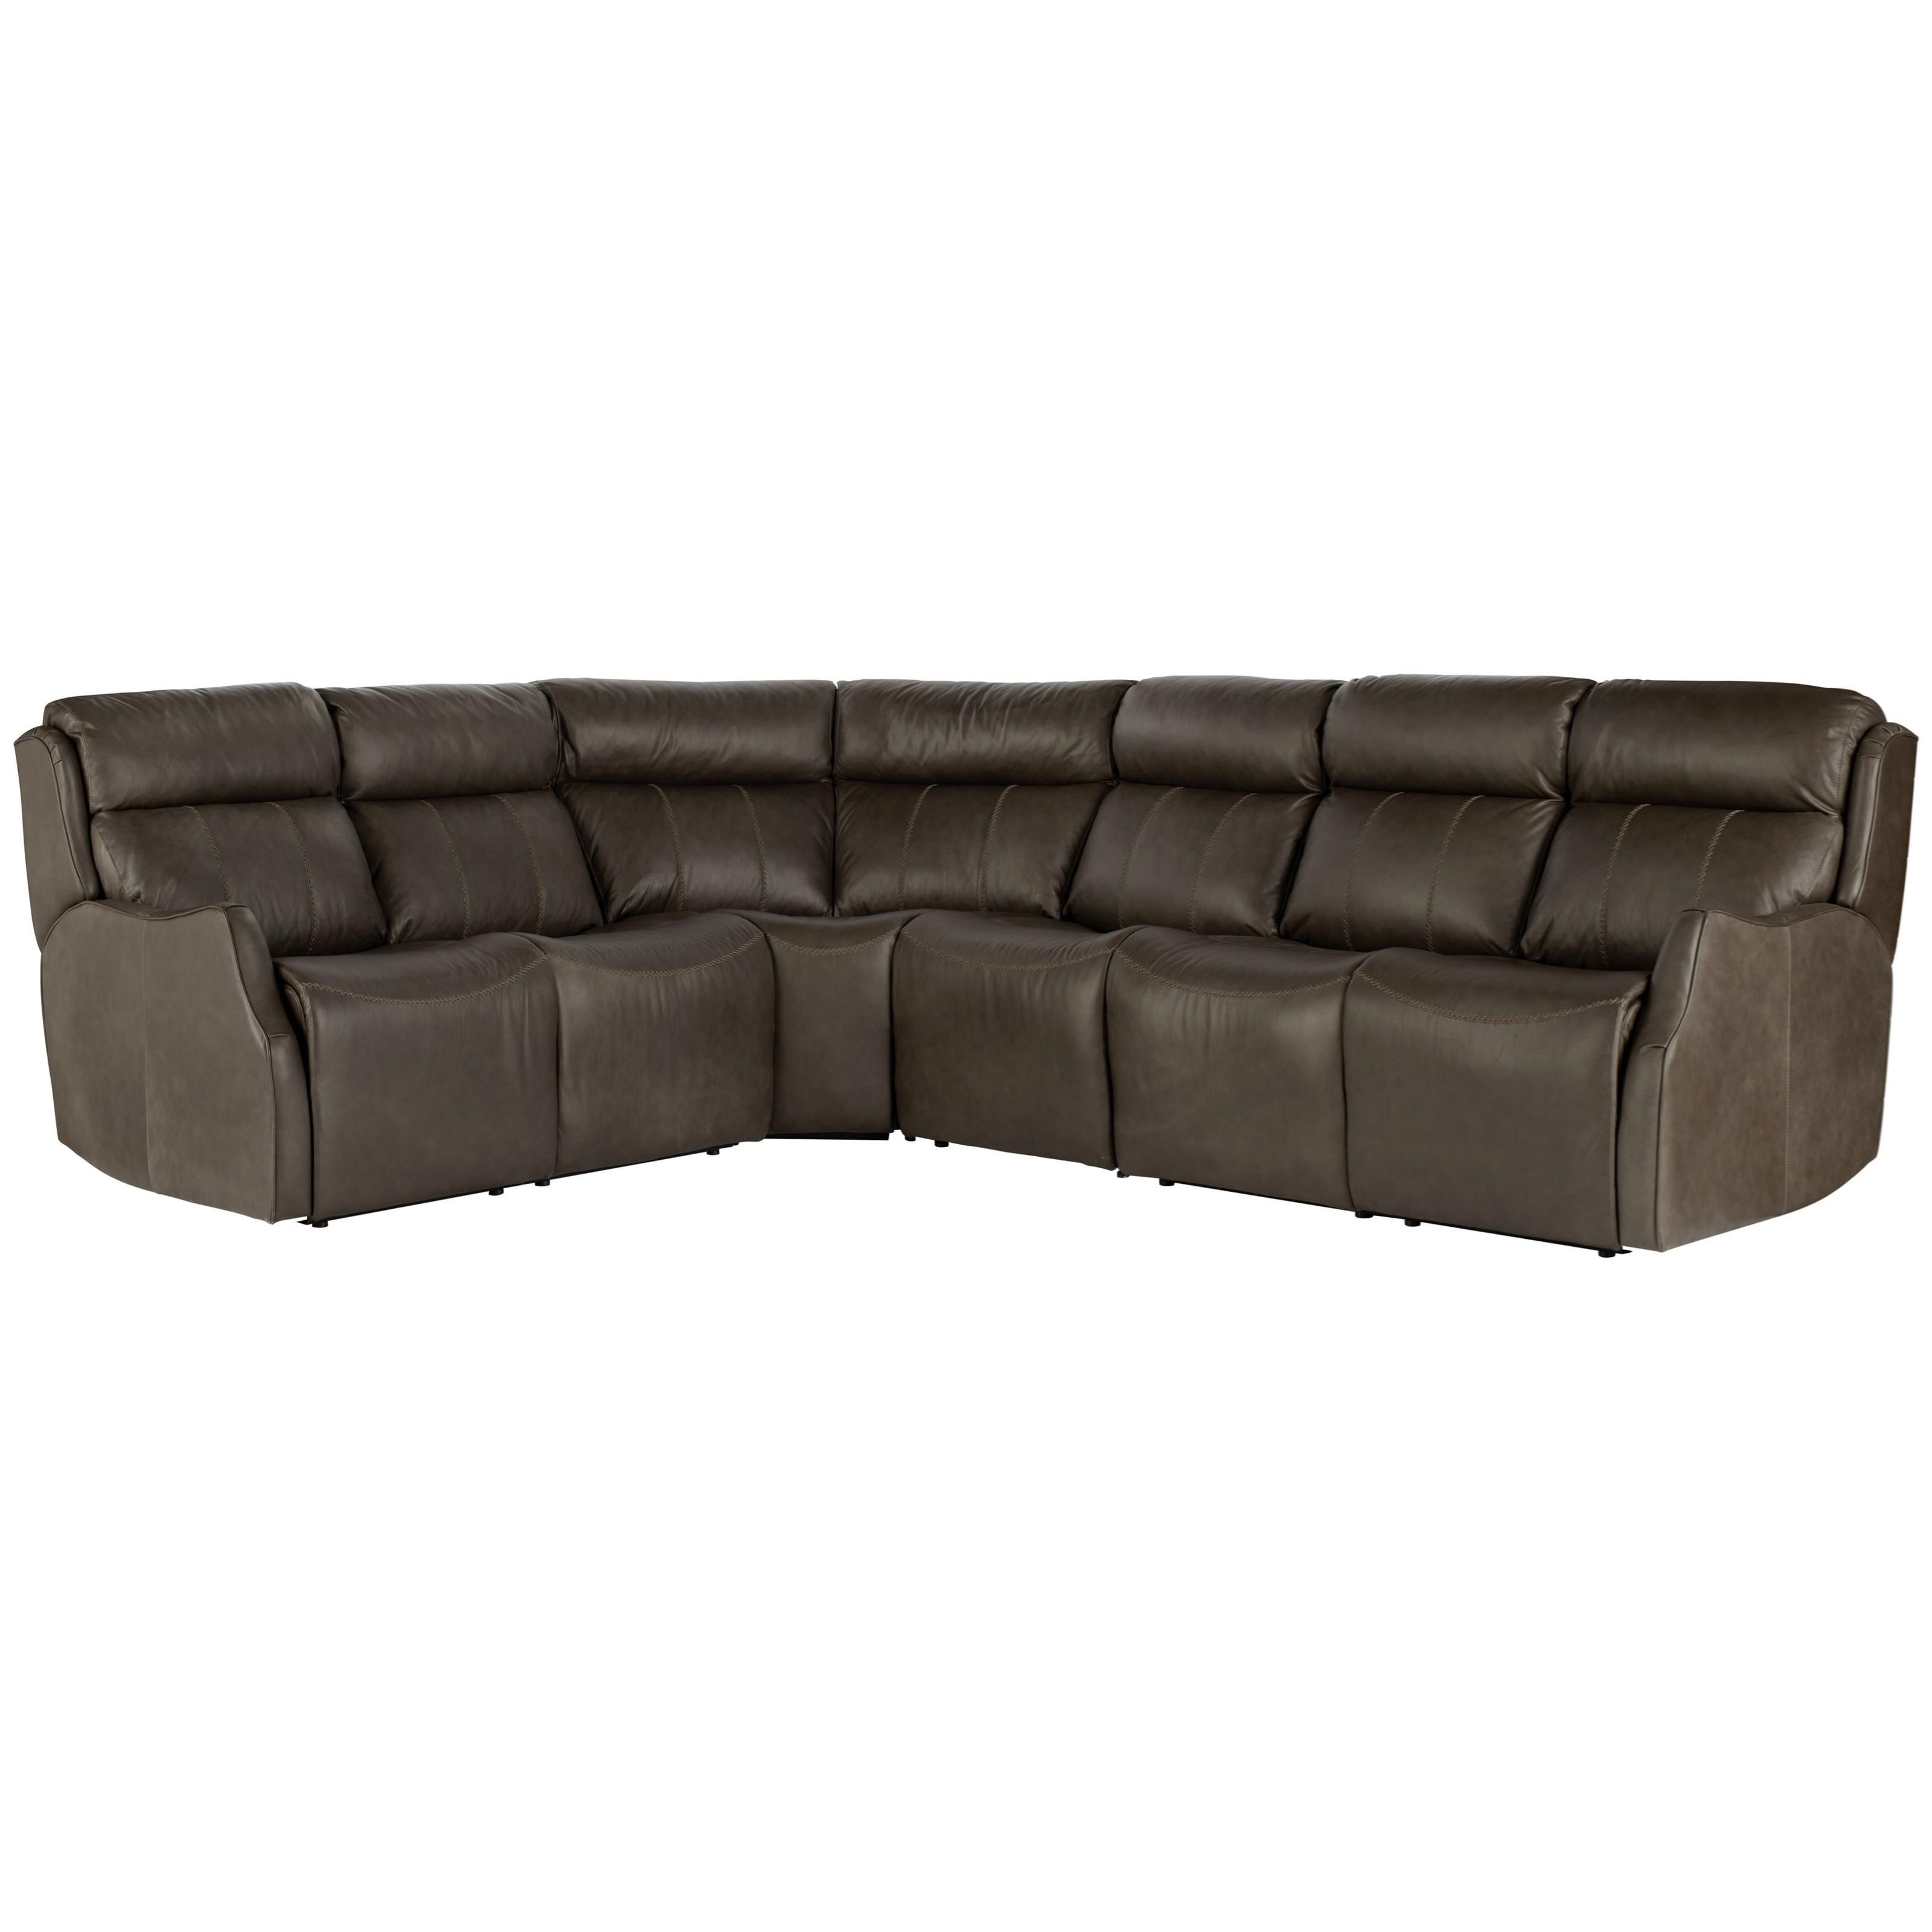 Motion Watson Sectional by O'Connor Designs at Sprintz Furniture